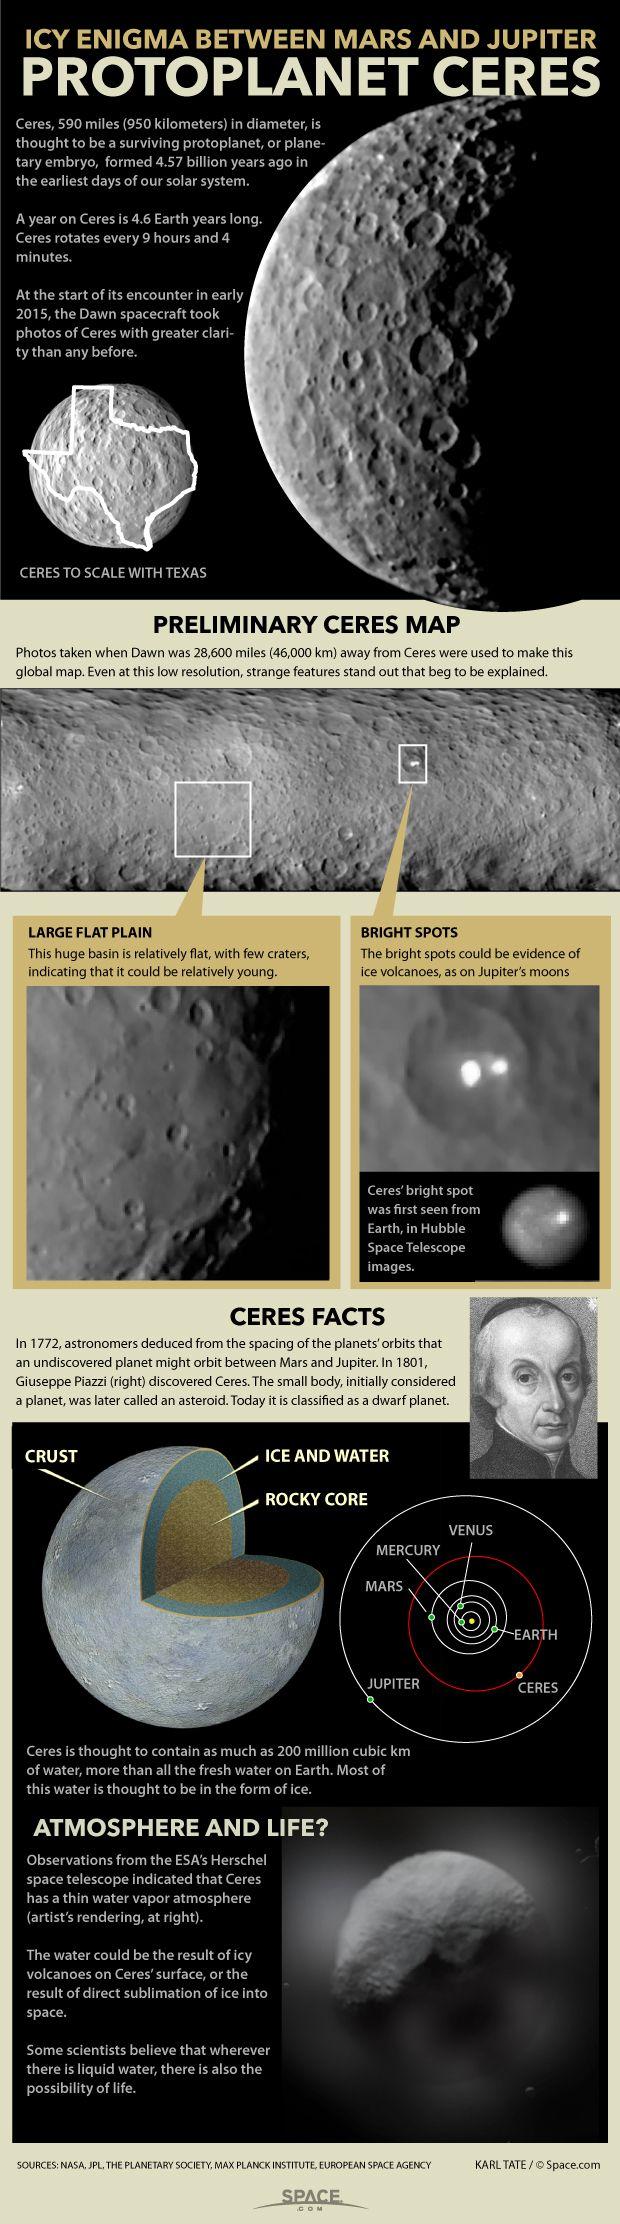 NASA's Dawn spacecraft is getting humanity's best view yet of the tiny survivor from the solar system's earliest days. See what we know about the dwarf planet Ceres in this our infographic.